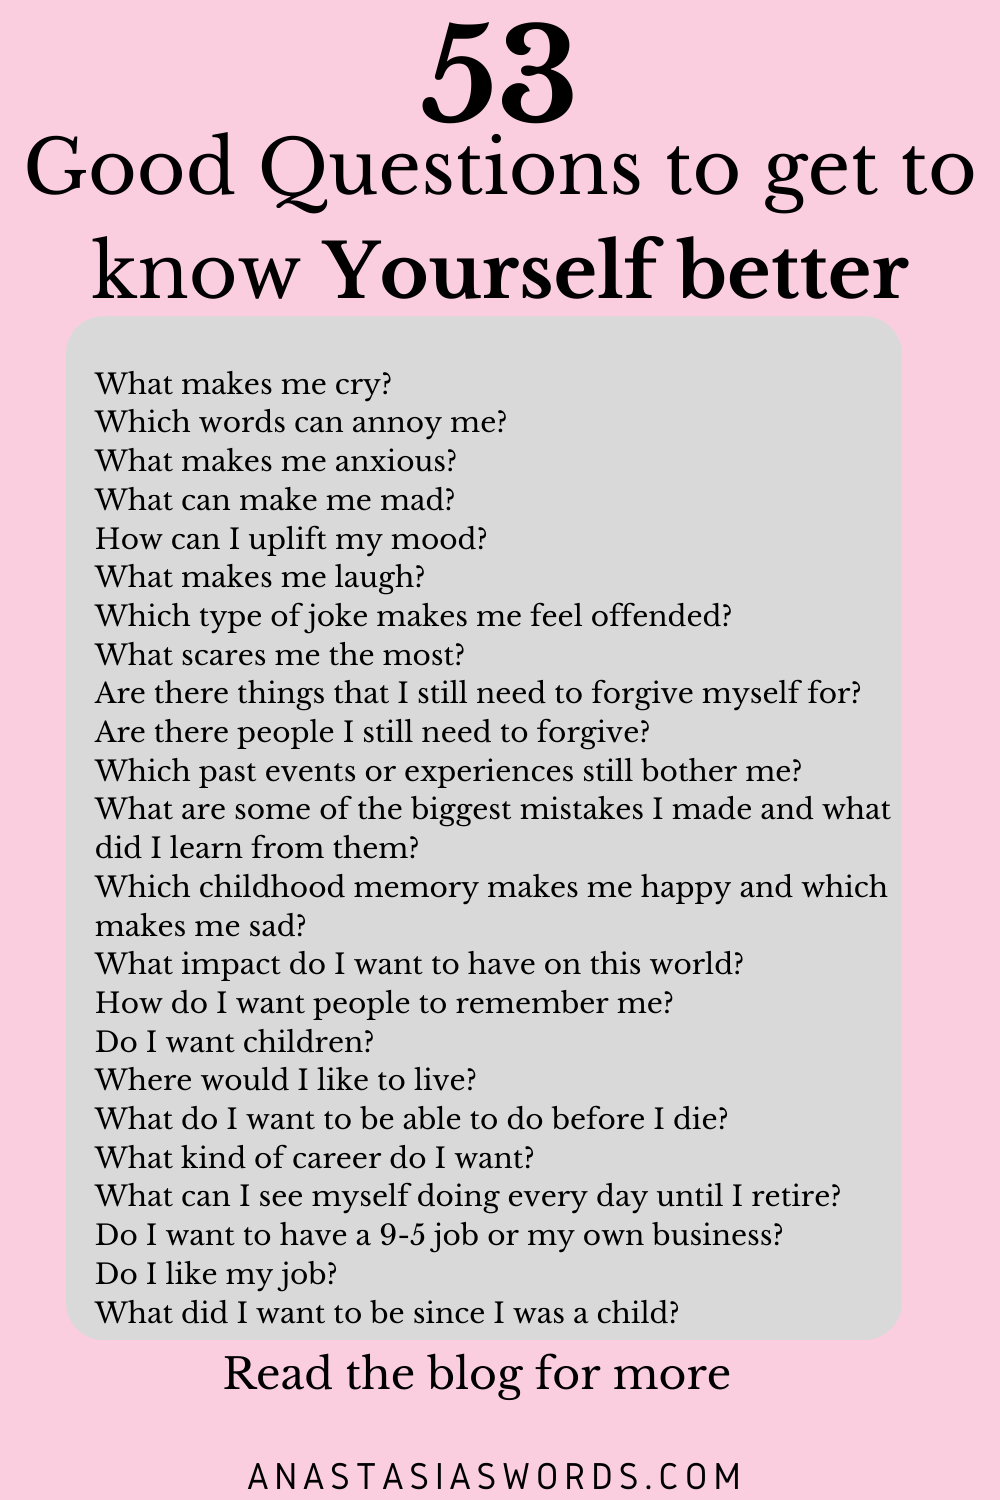 53 Good questions to get to know yourself better